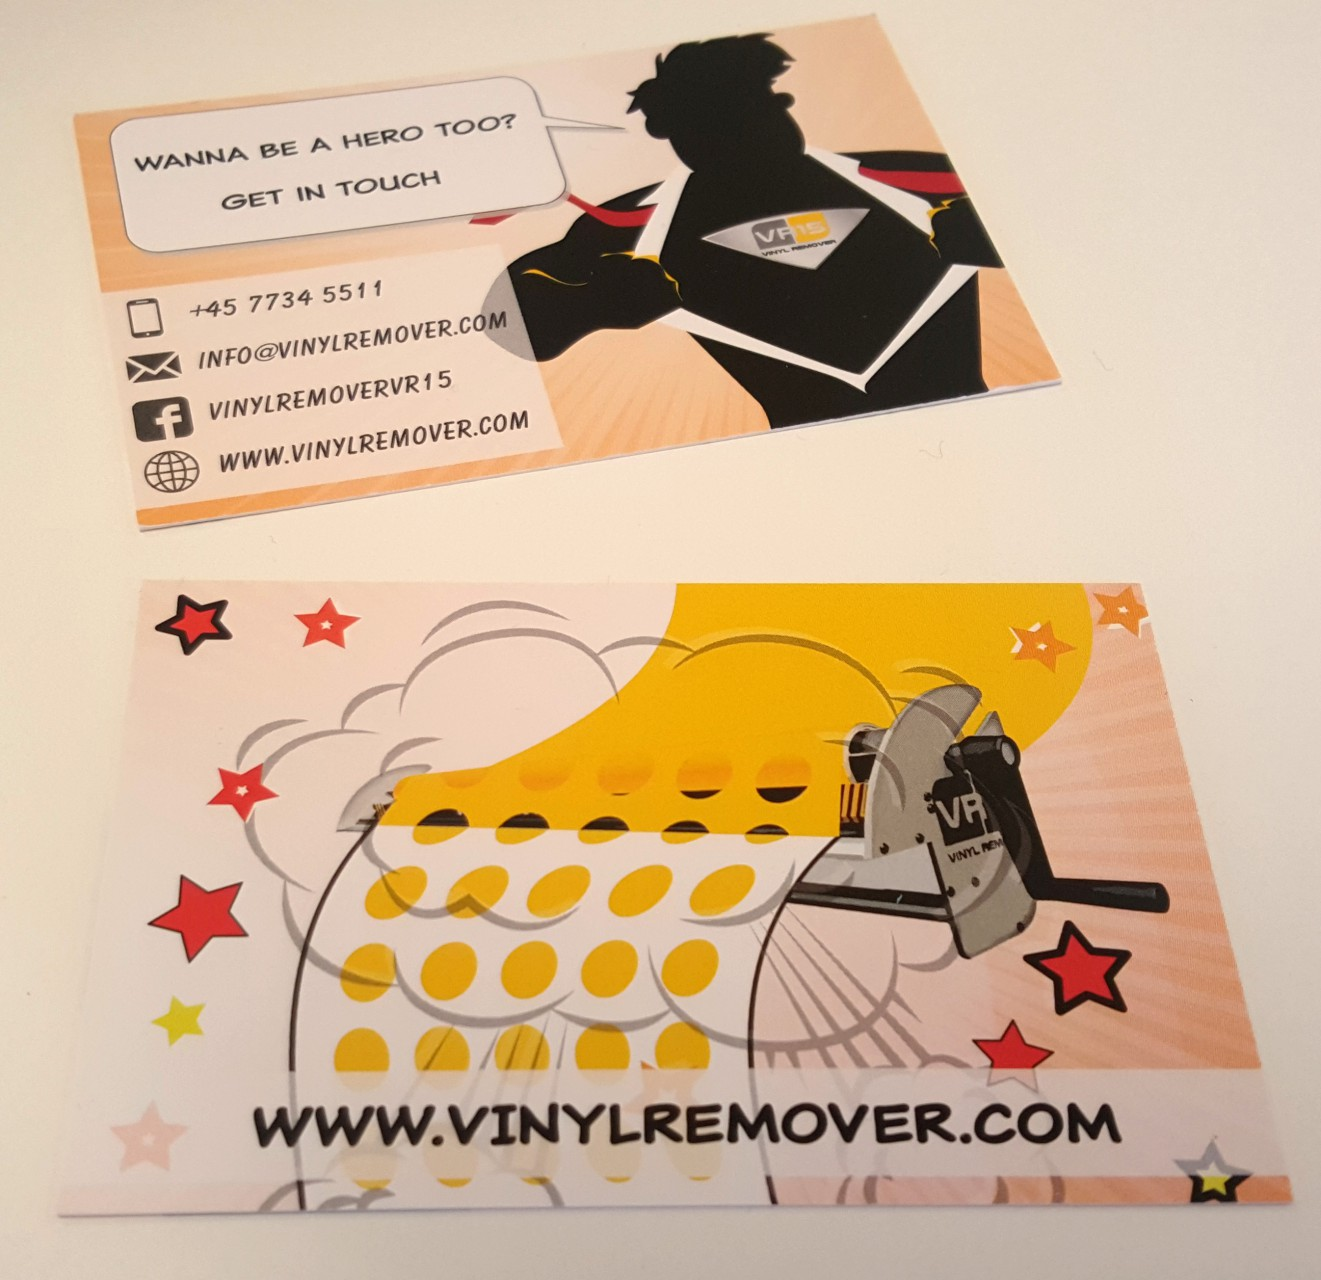 Getting ready for fespa 2016 - Vinyl Remover VR15